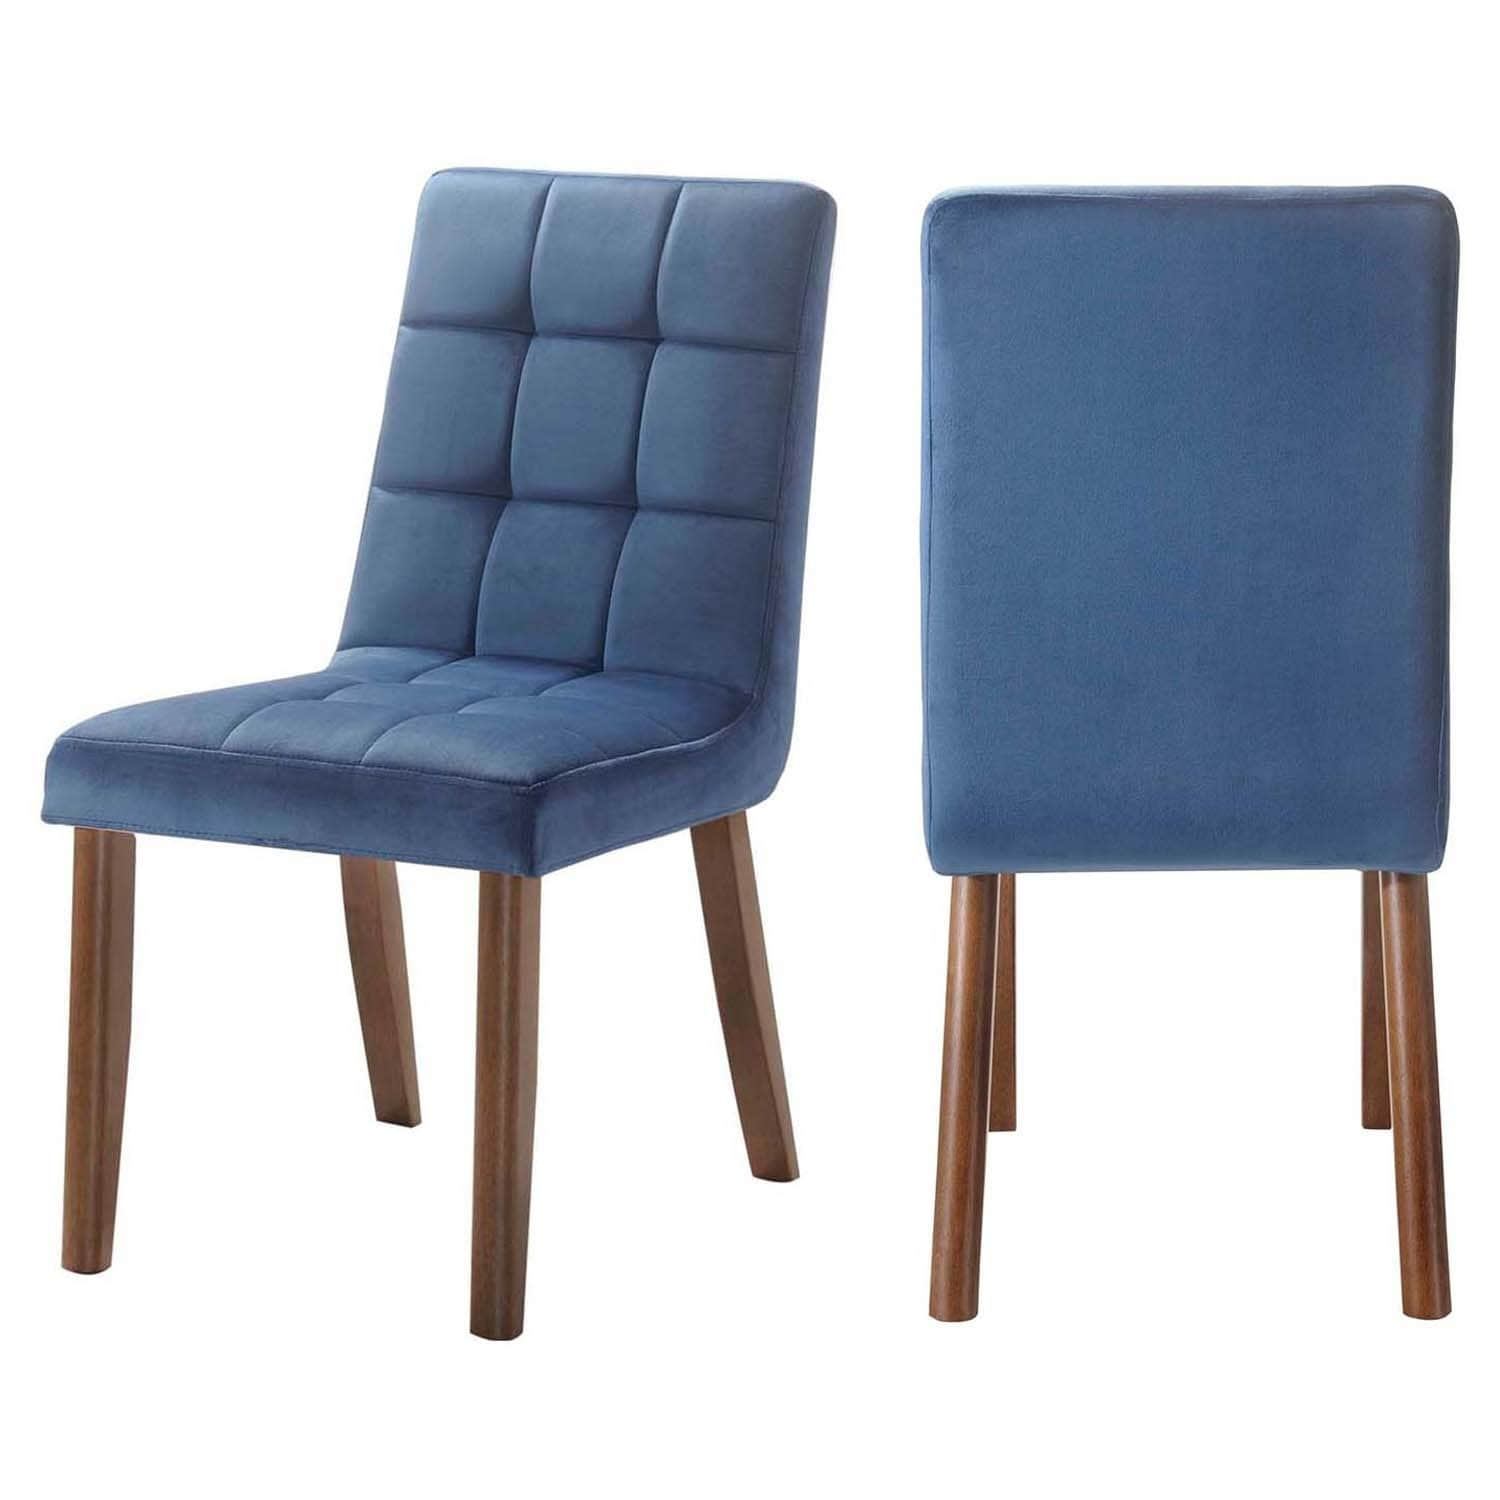 Picket House Furnishings Rosie Tufted Side Chair Set - Free Shipping ...